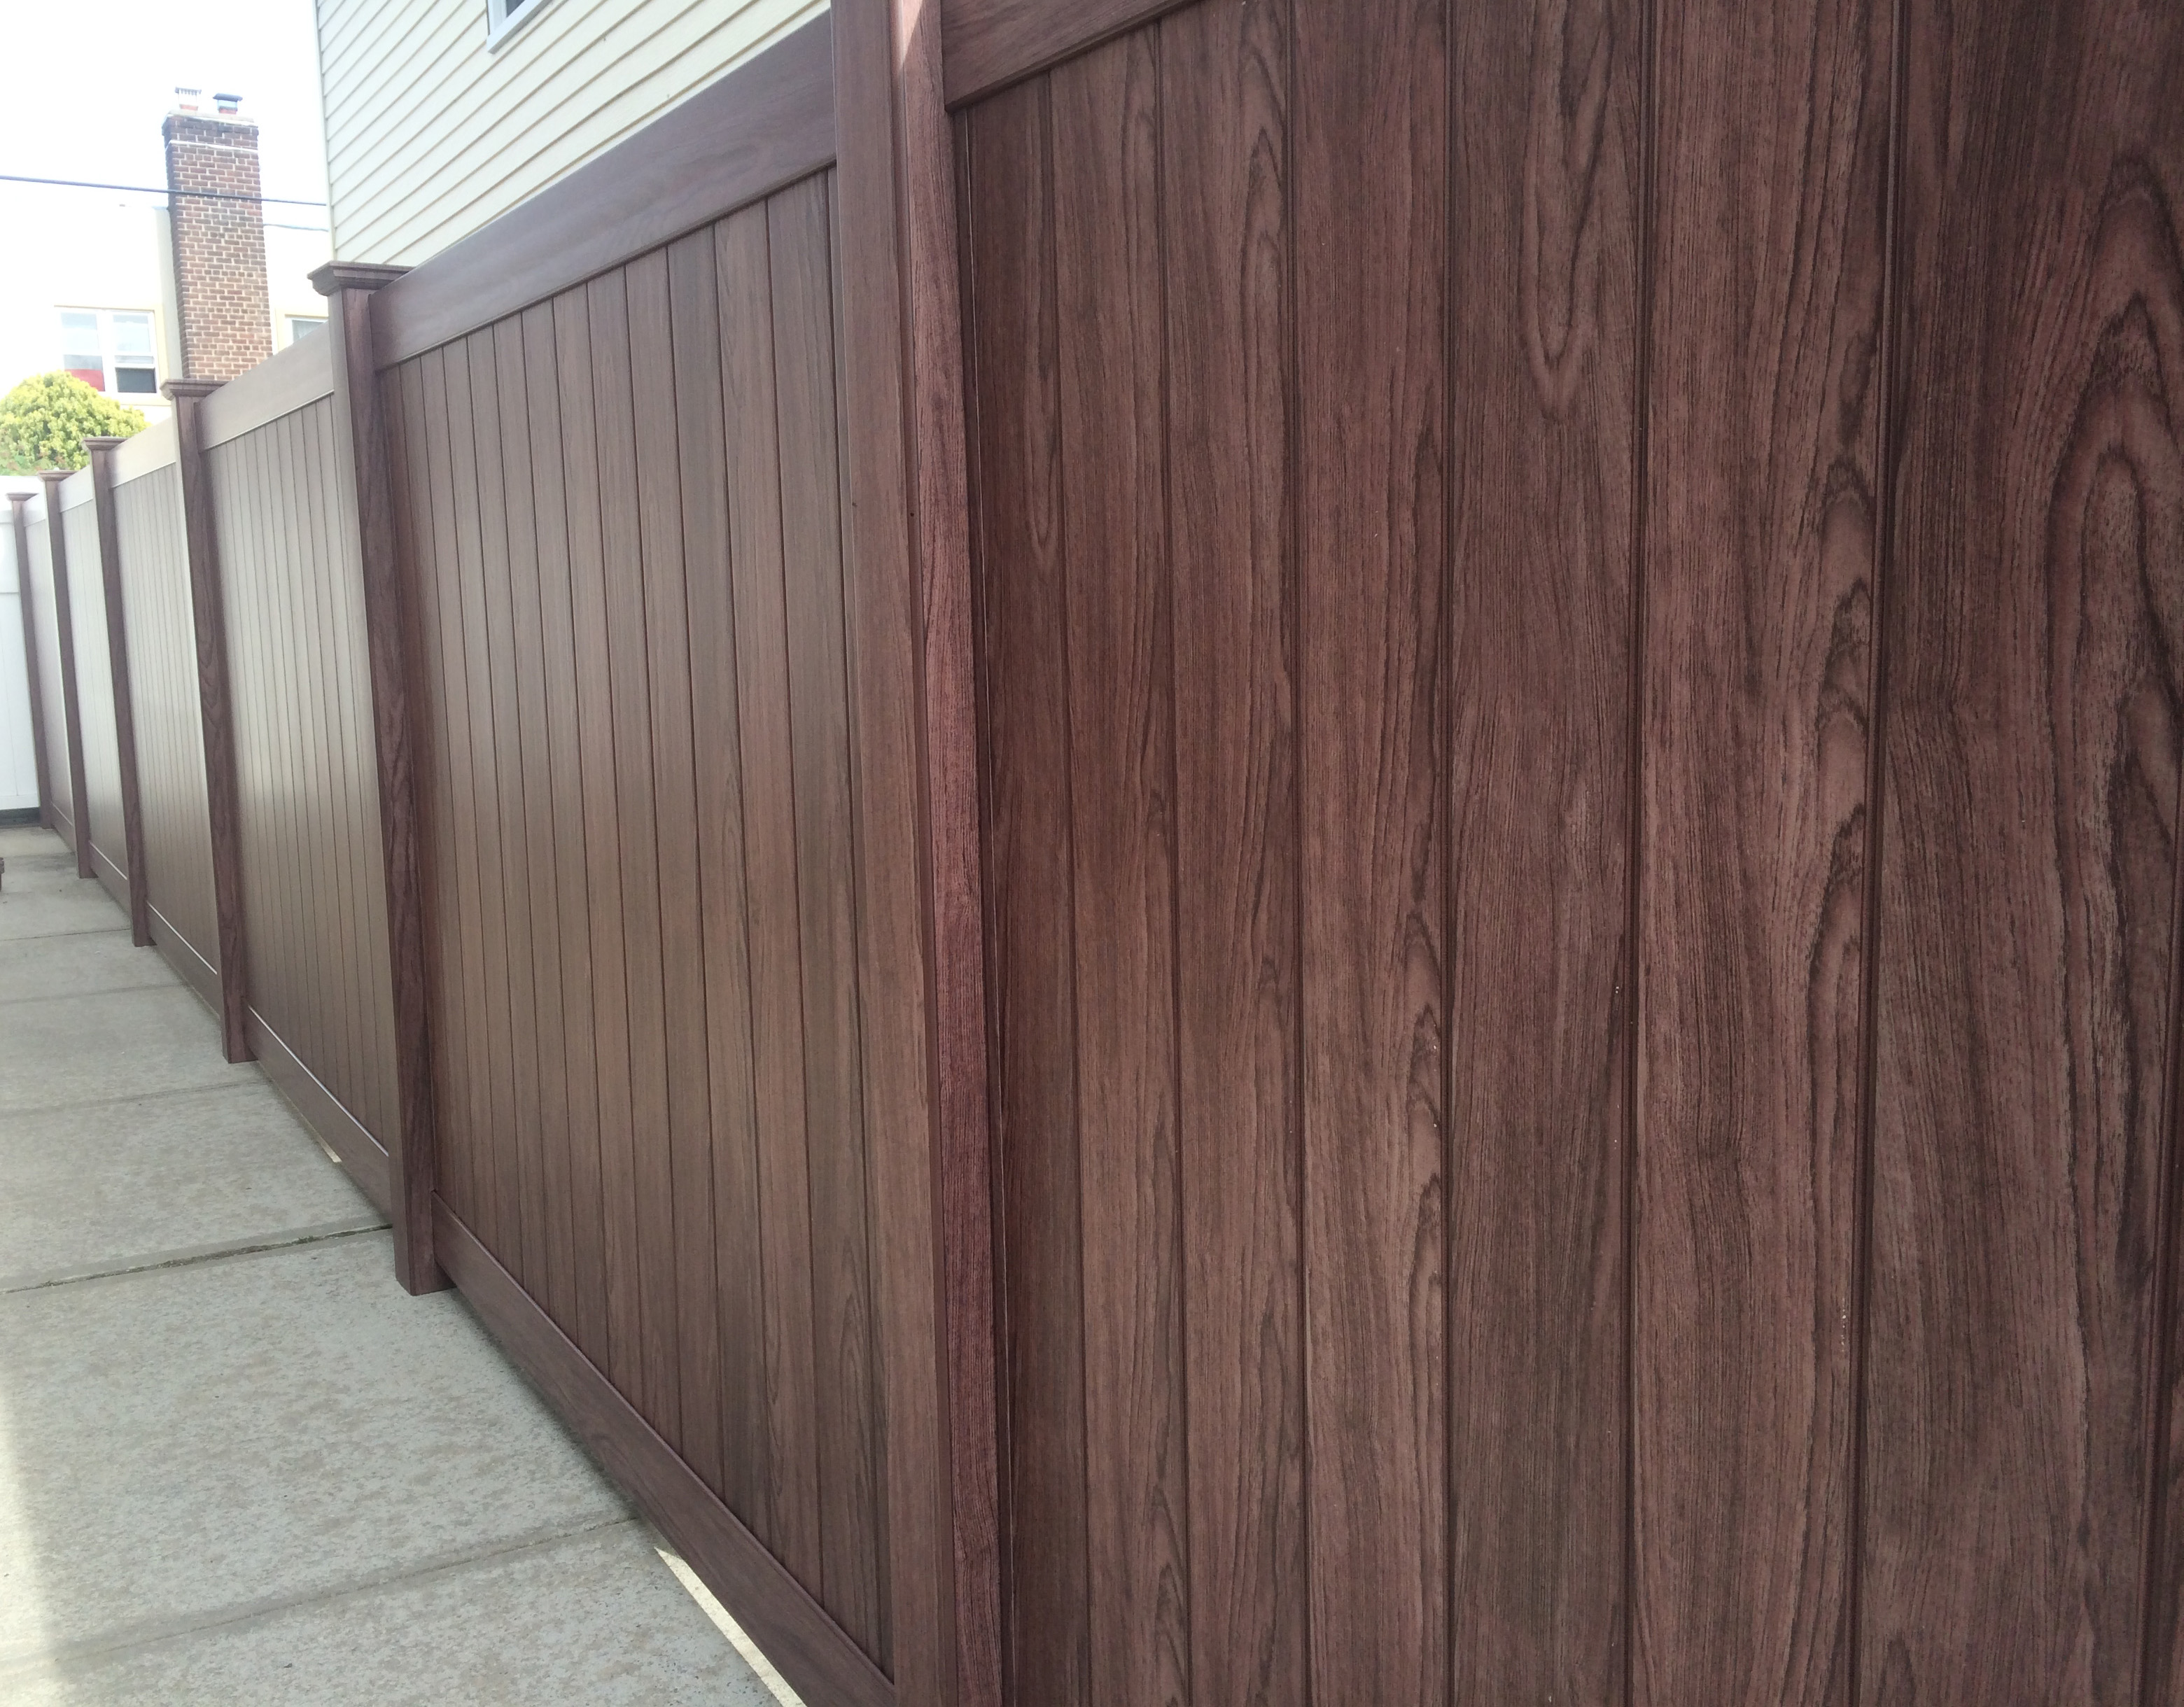 Spring home special must have renovation tips the forum newsgroup among the beautiful new color choices available in vinyl fencing is an entire series of wood baanklon Gallery